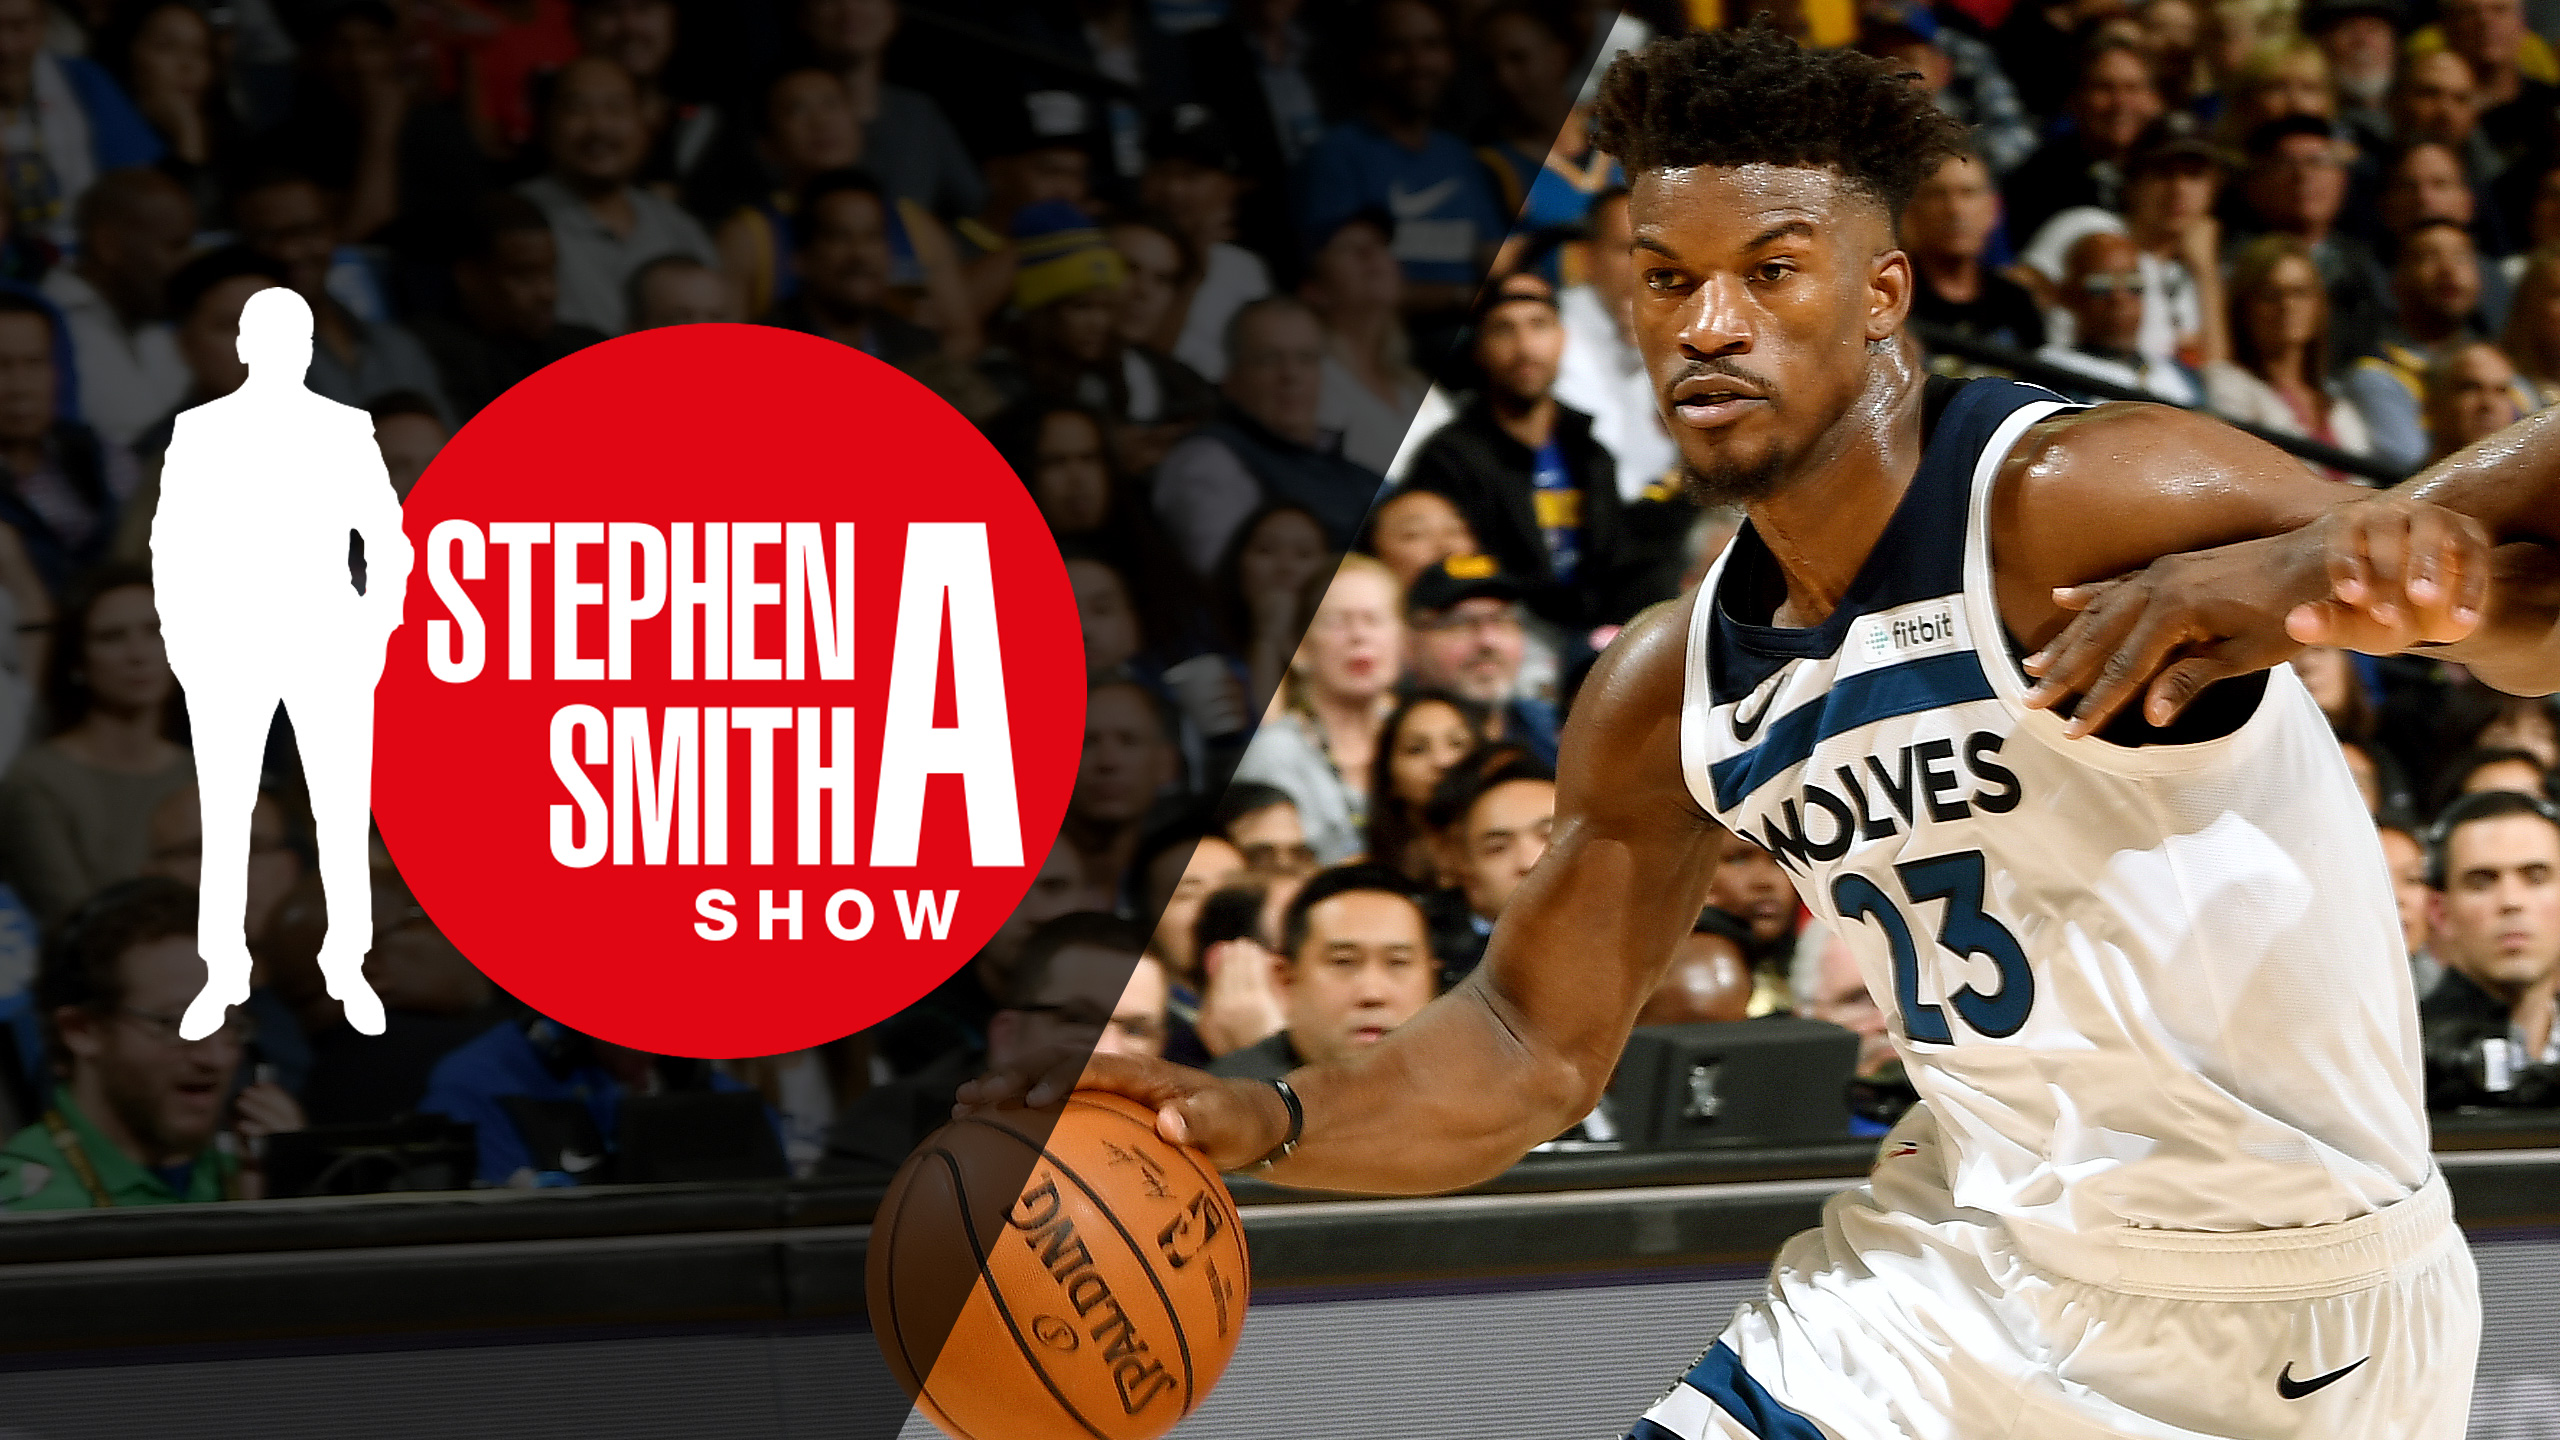 Mon, 11/12 - The Stephen A. Smith Show